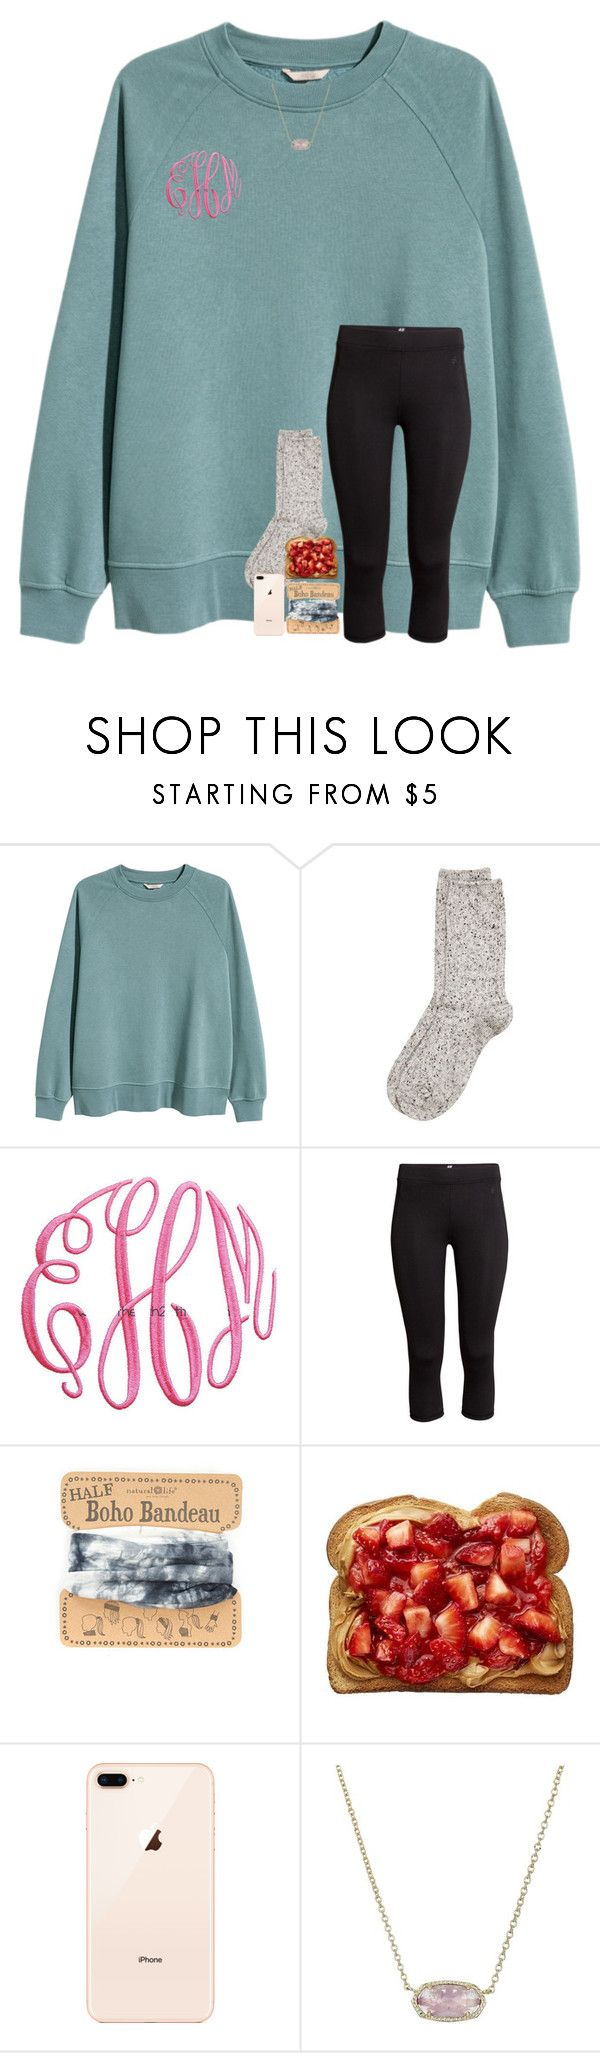 """if it's meant to be, let it be"" by arieannahicks on Polyvore featuring H&M, River Island, Natural Life and Kendra Scott"